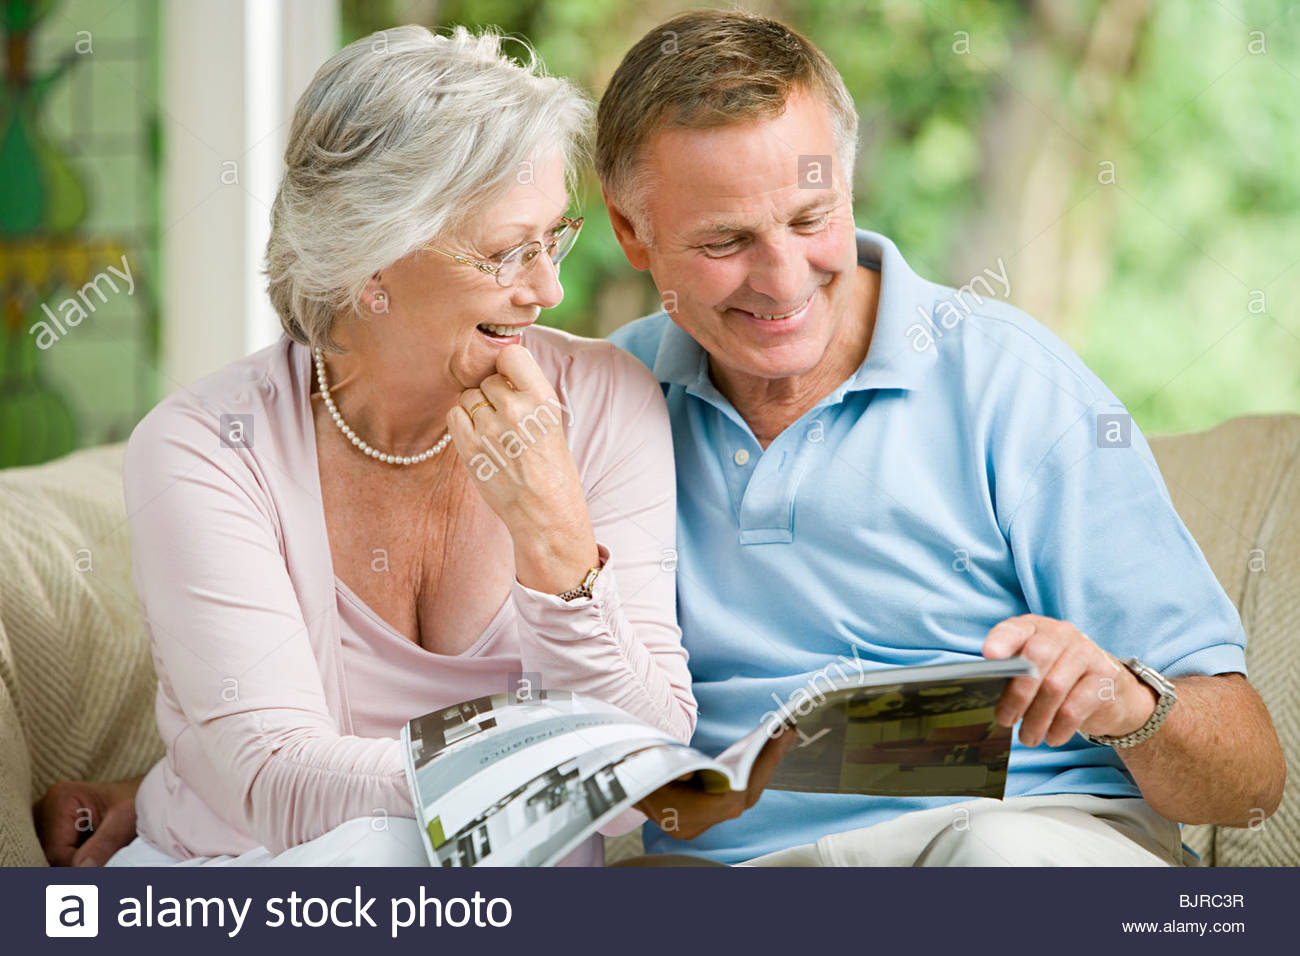 Couple looking at brochure Photo Stock